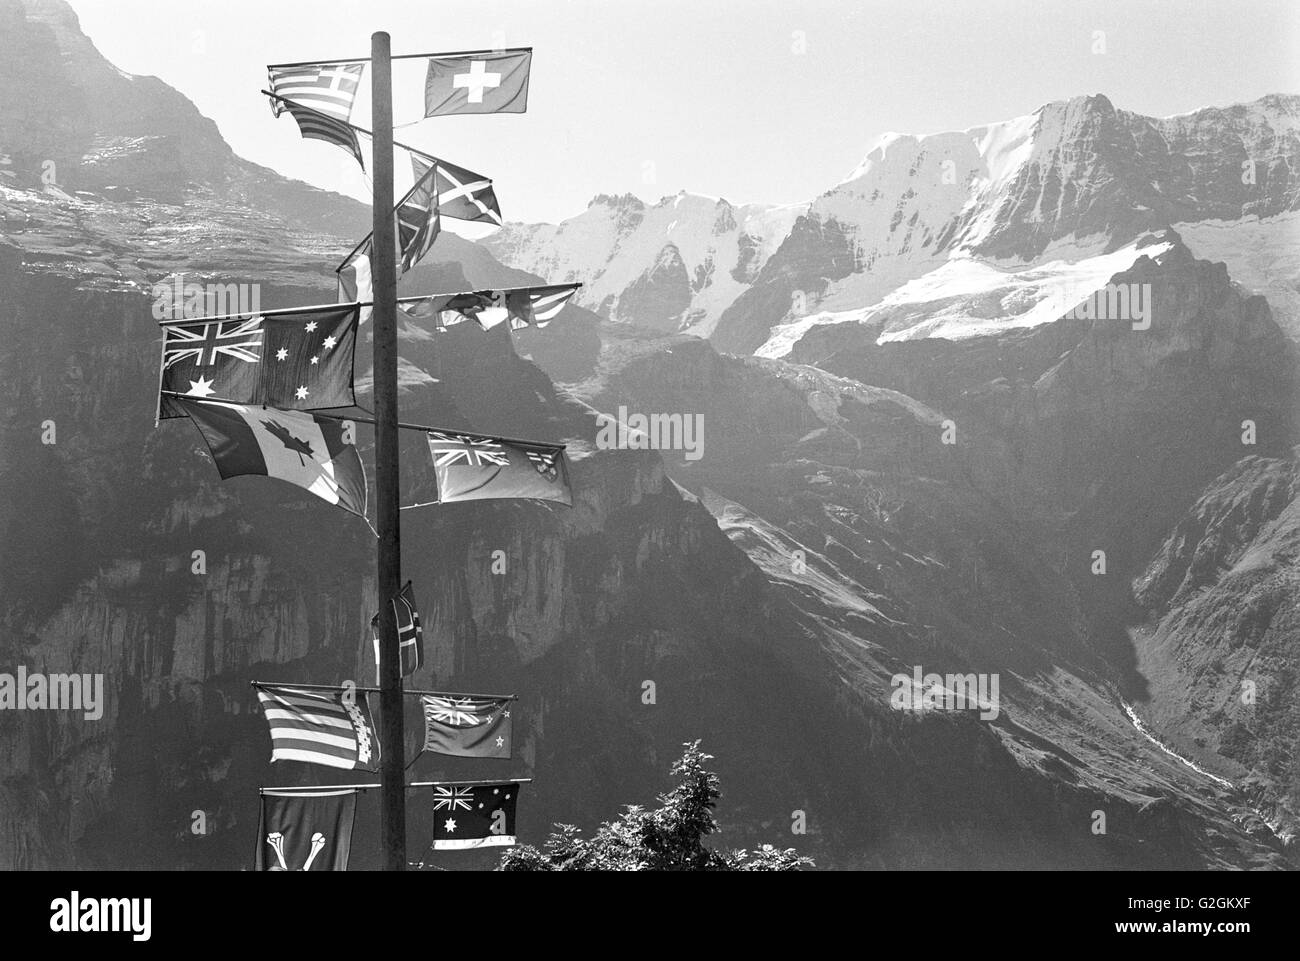 International Flags on Pole With Mountains in Background, Switzerland - Stock Image